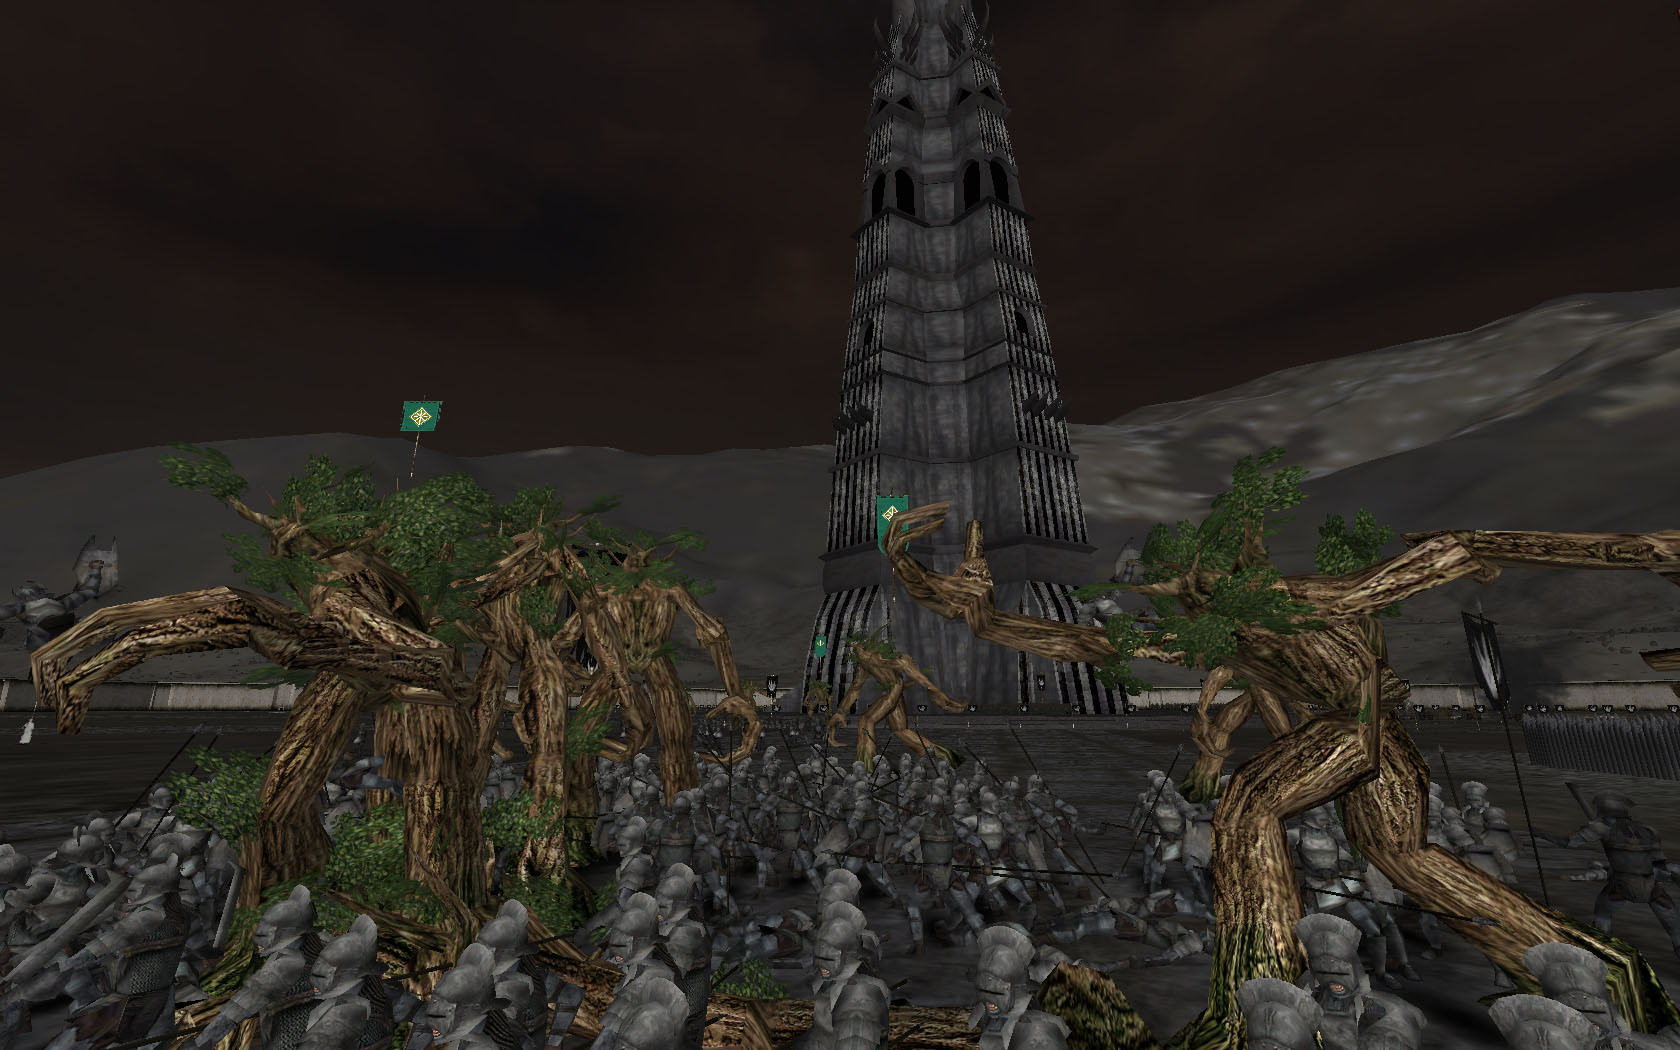 Ents attacking Isengard